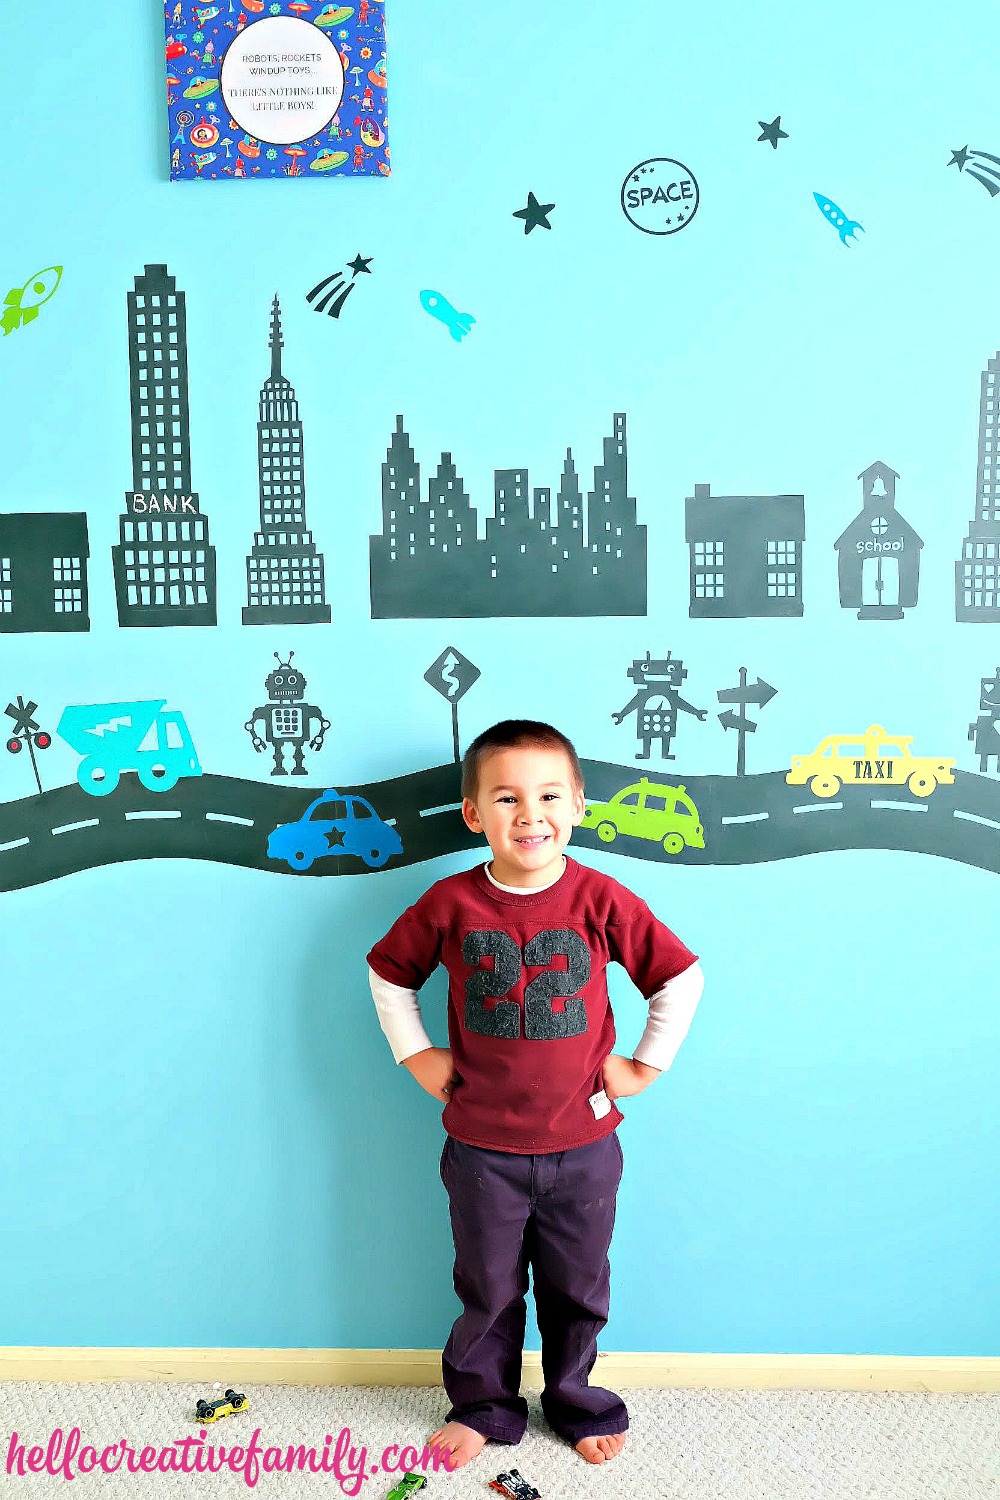 This robot town wall looks like too much fun for little boys! What a great idea for a boy's room!